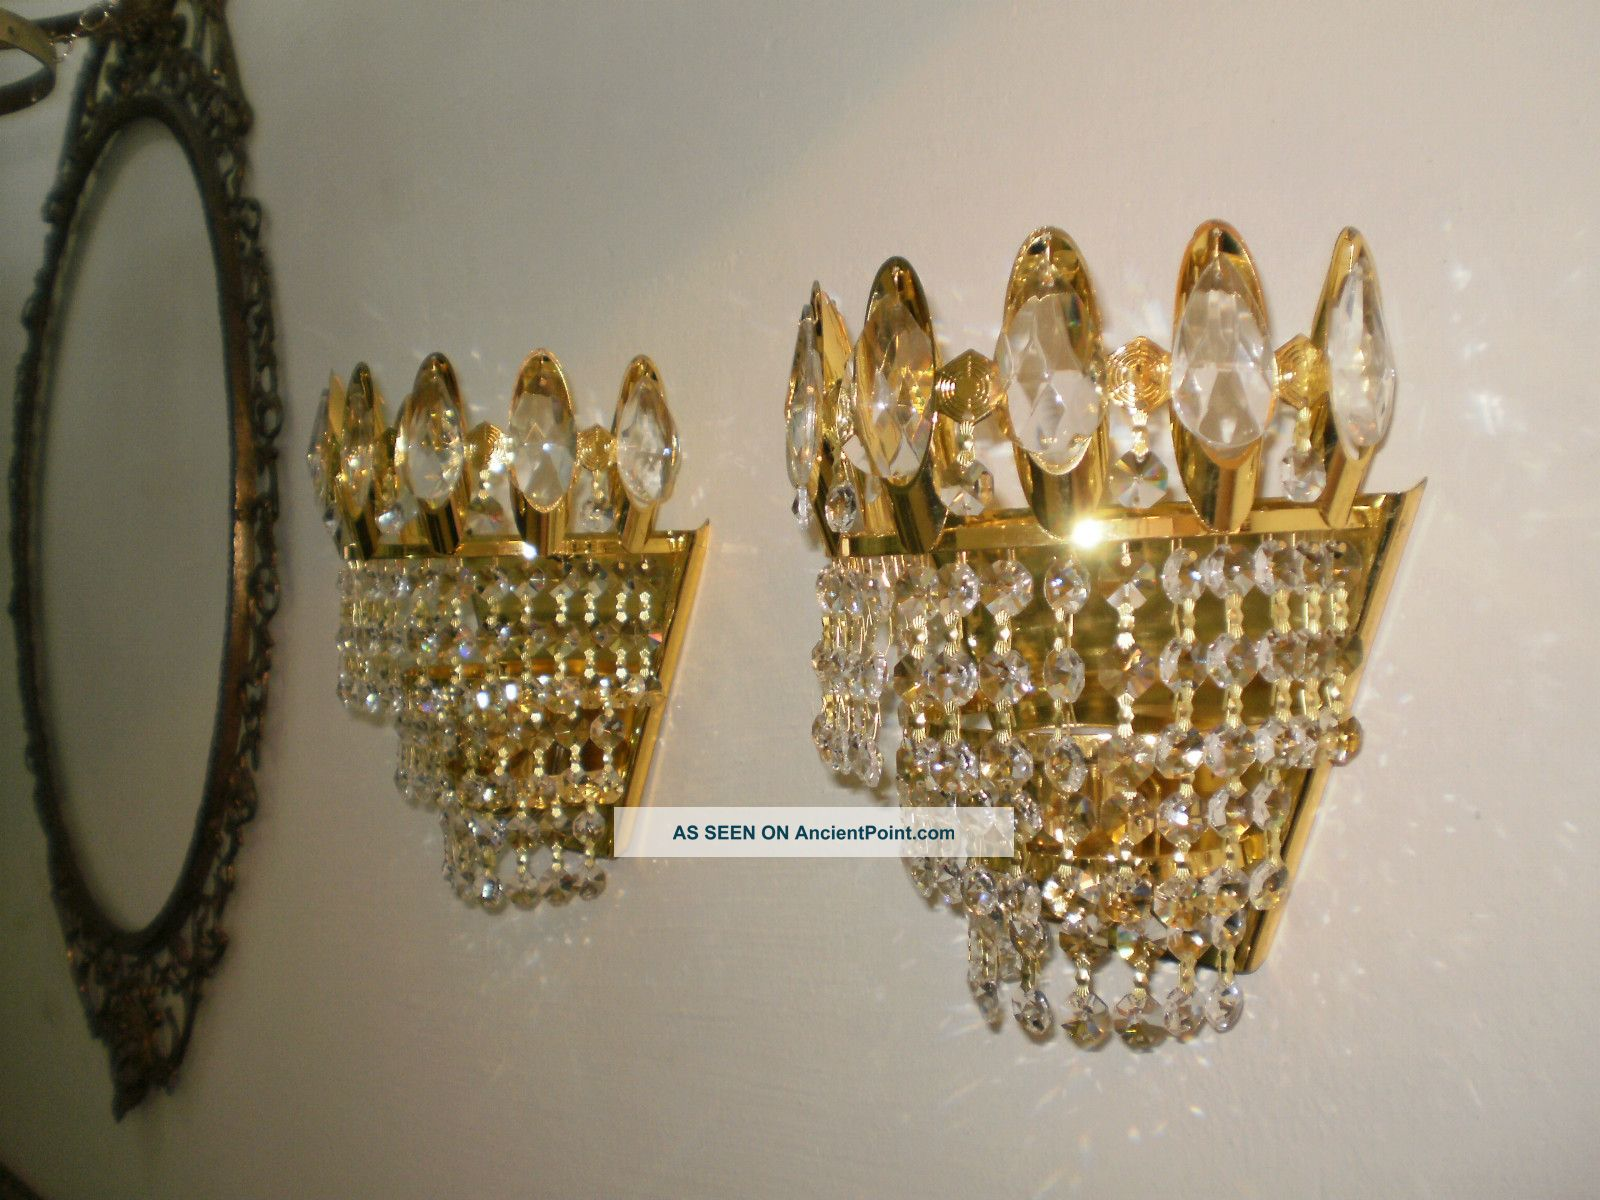 2 Pcs Vintage Antique Brass Crystal Wall Sconce Lighting Unique ...